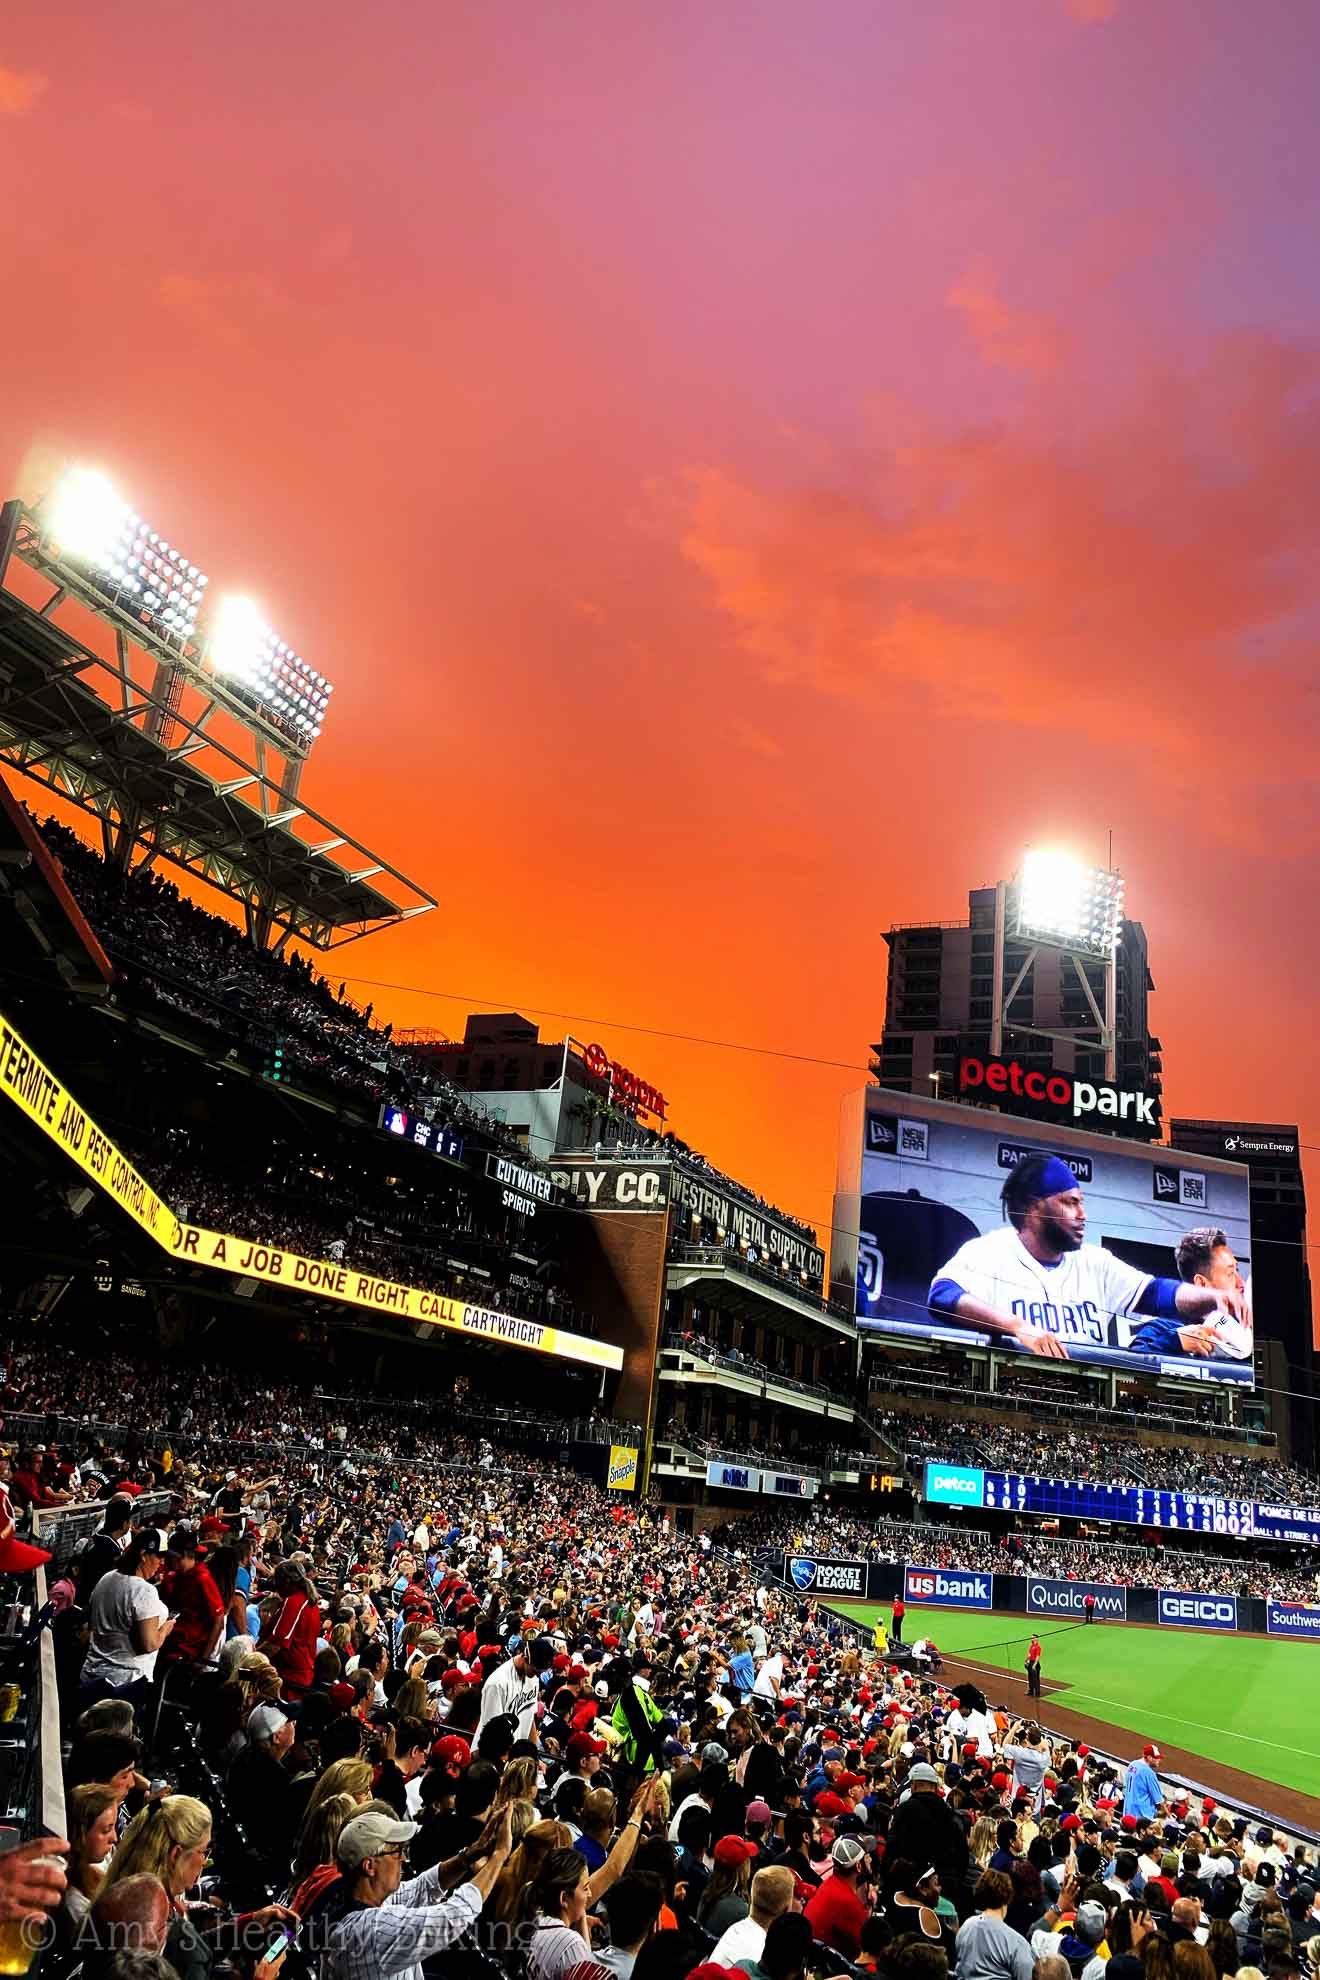 A brilliant pink and orange summer sunset at PetCo Park in San Diego